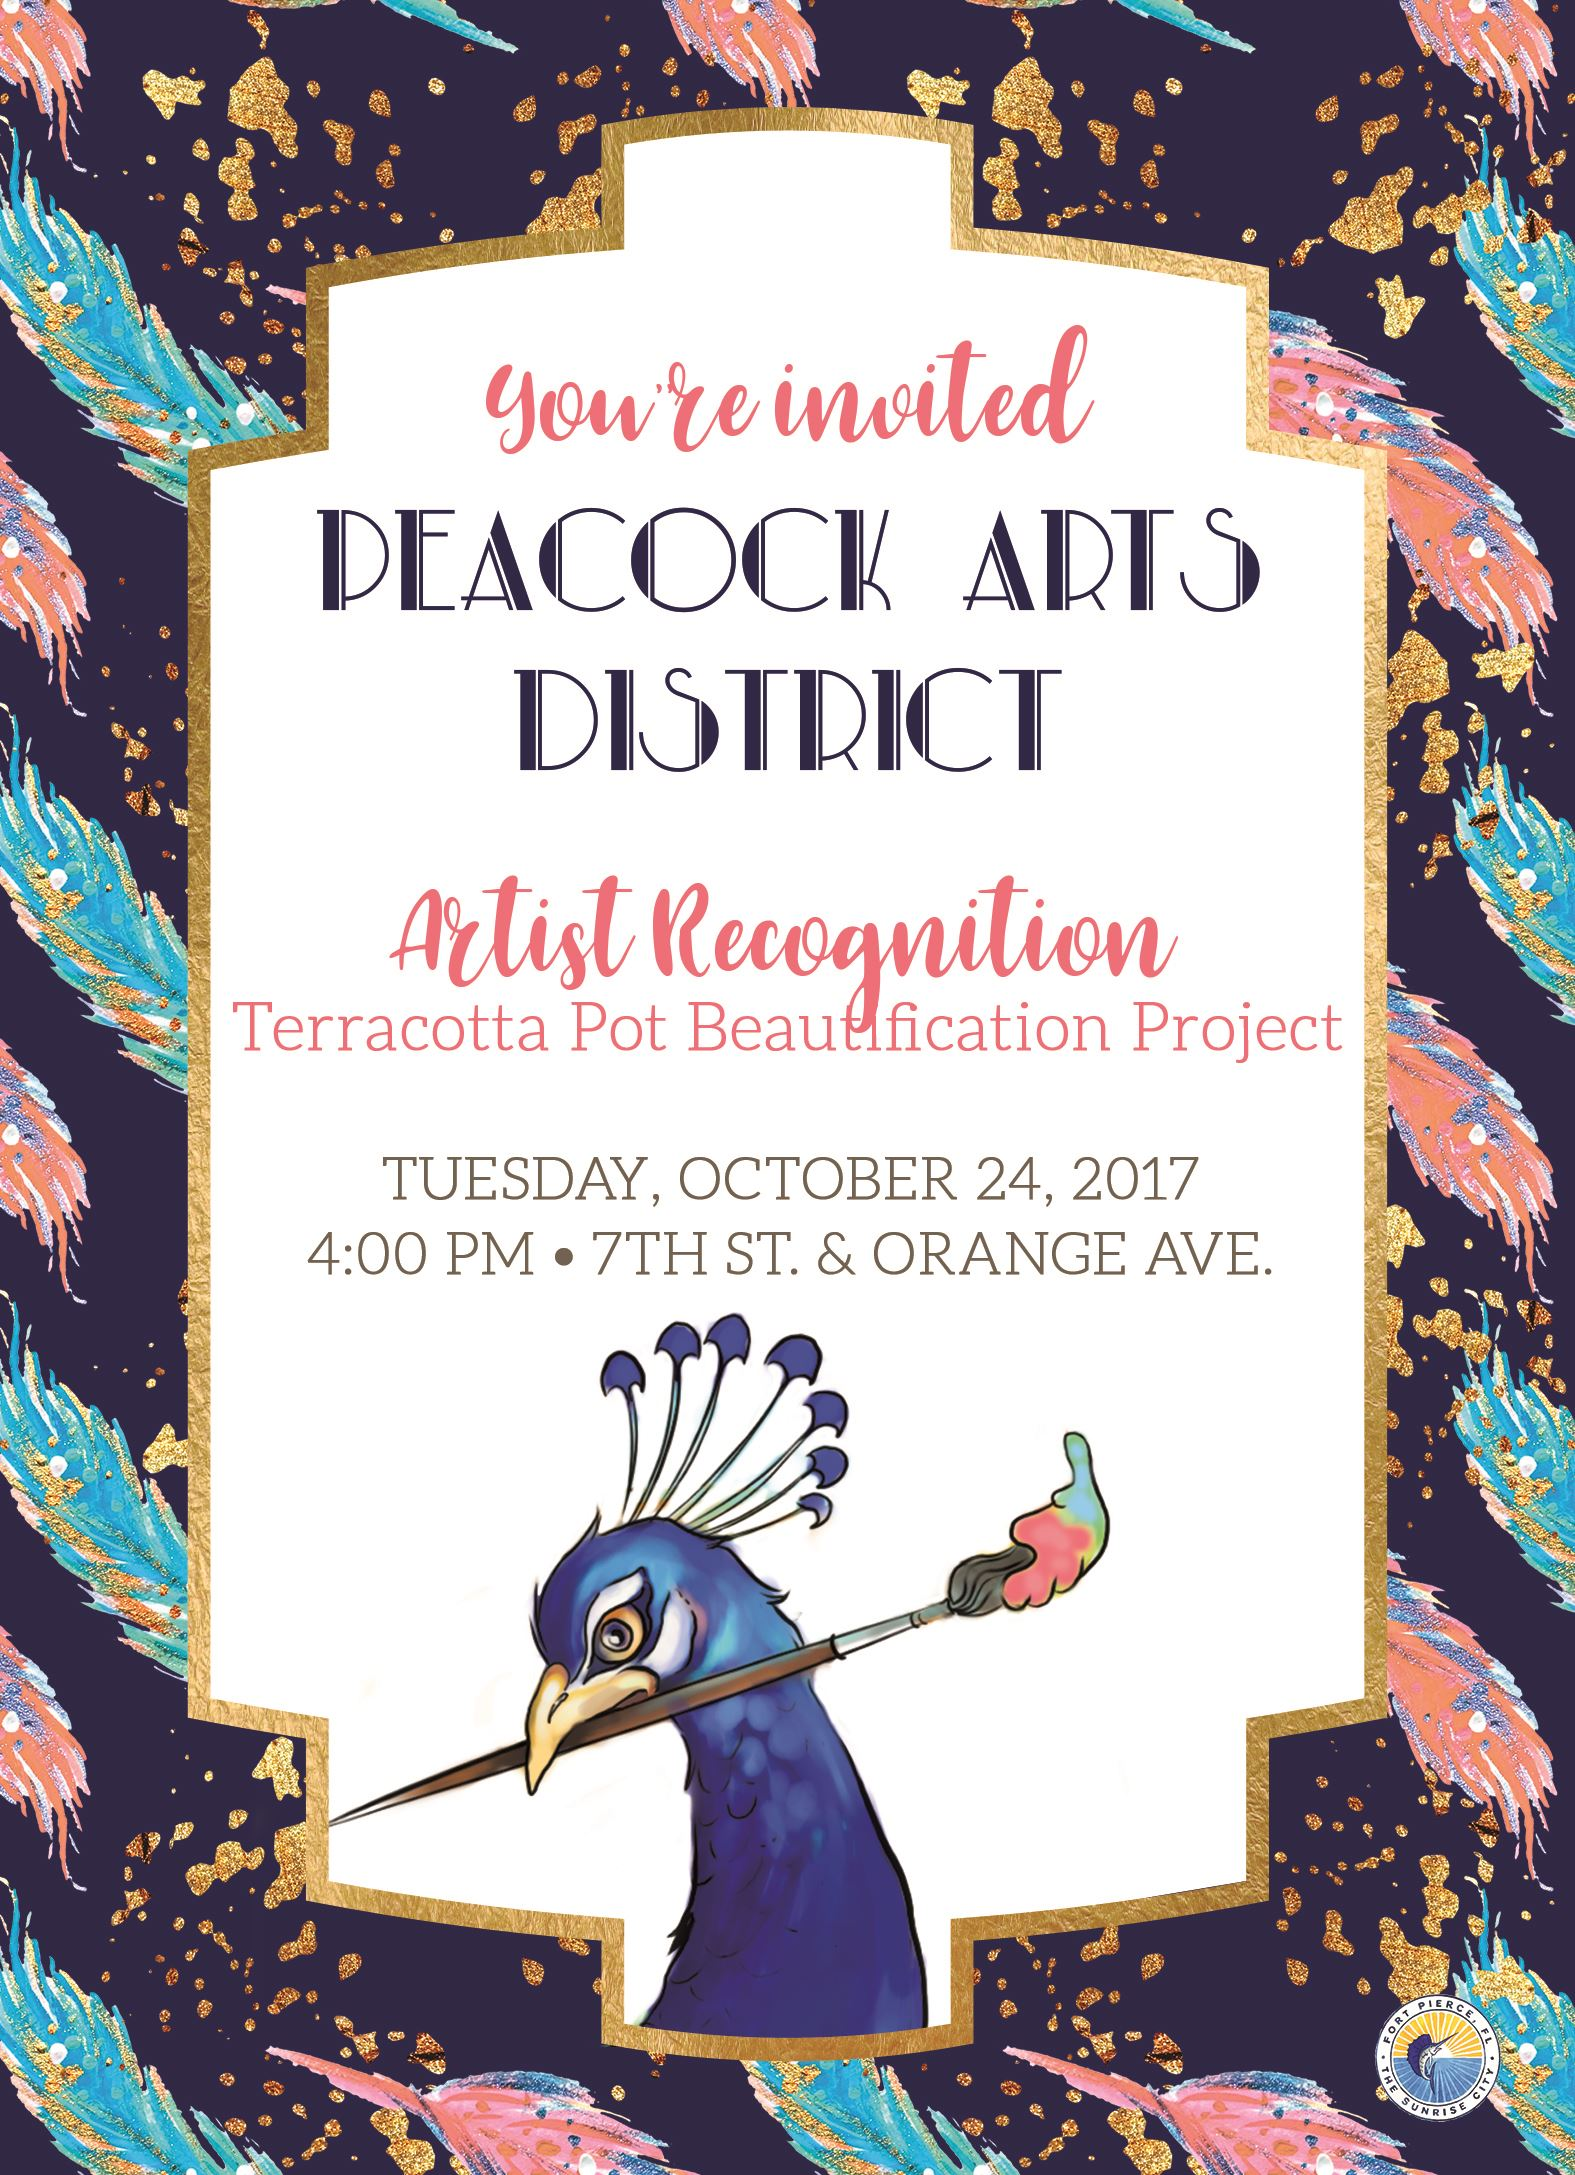 Peacock Arts District Artist Recognition Invitation